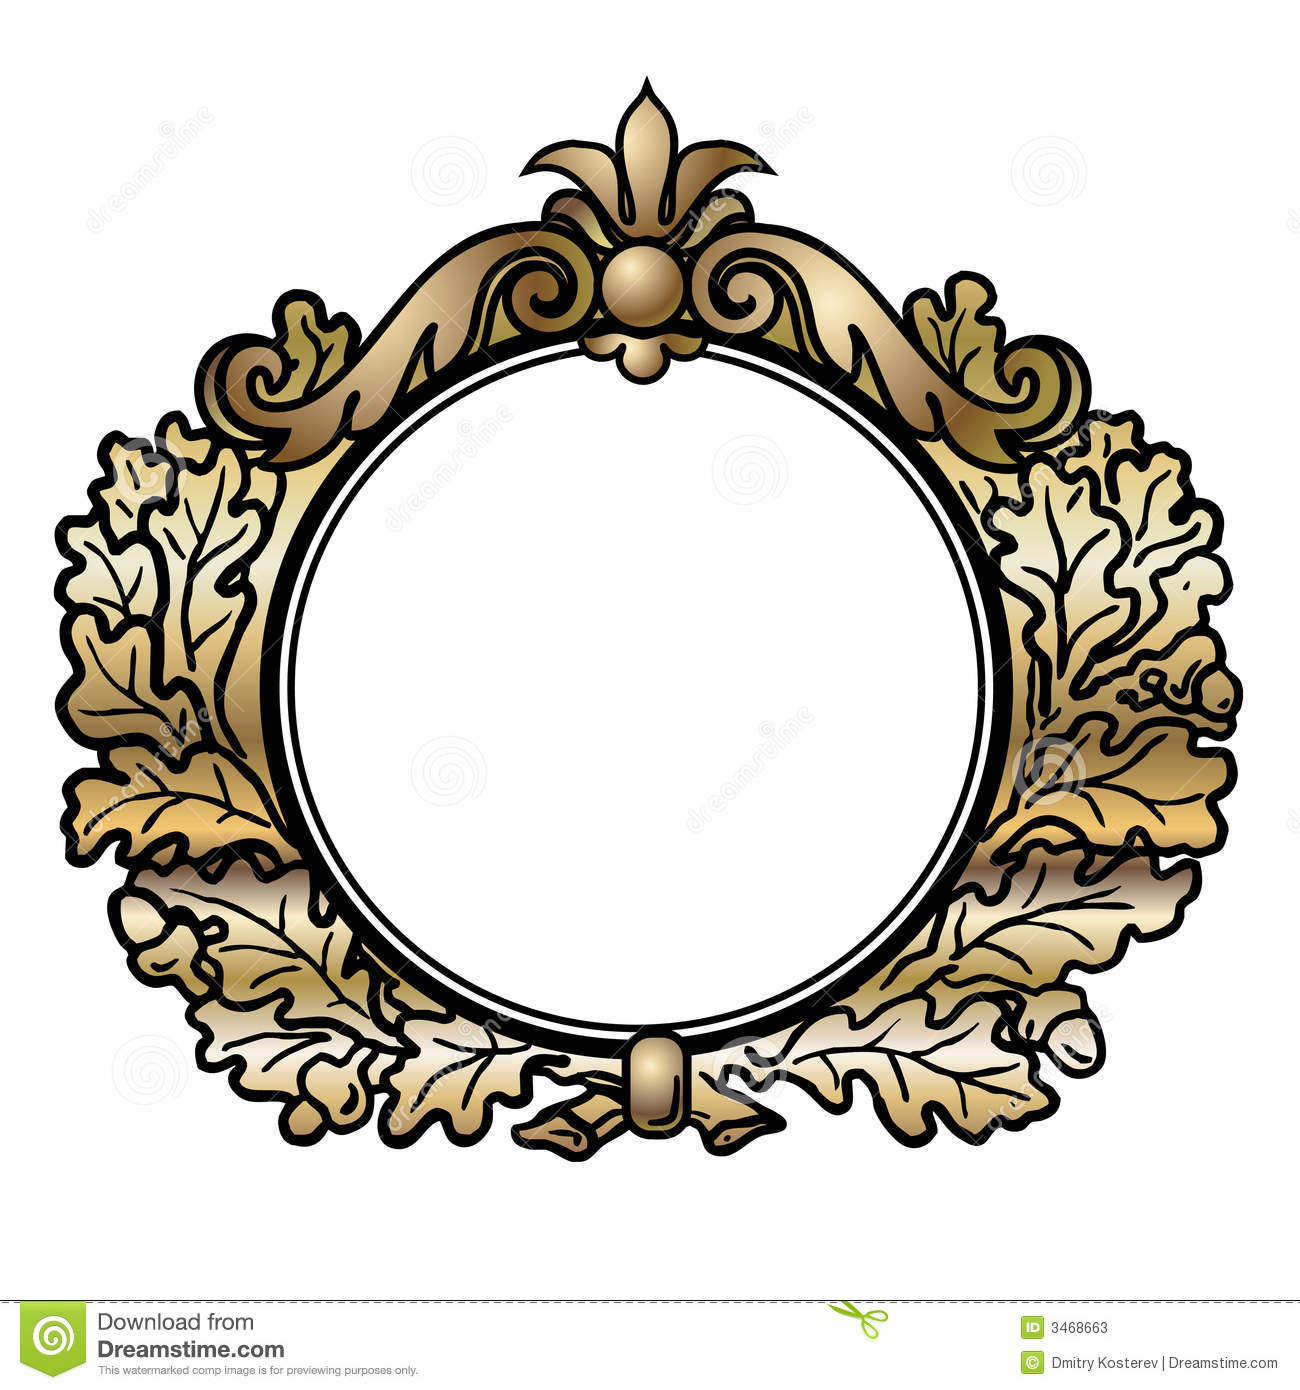 victorian style round frame stock vector illustration of empire rh dreamstime com victorian mirror frame vector round victorian frame vector